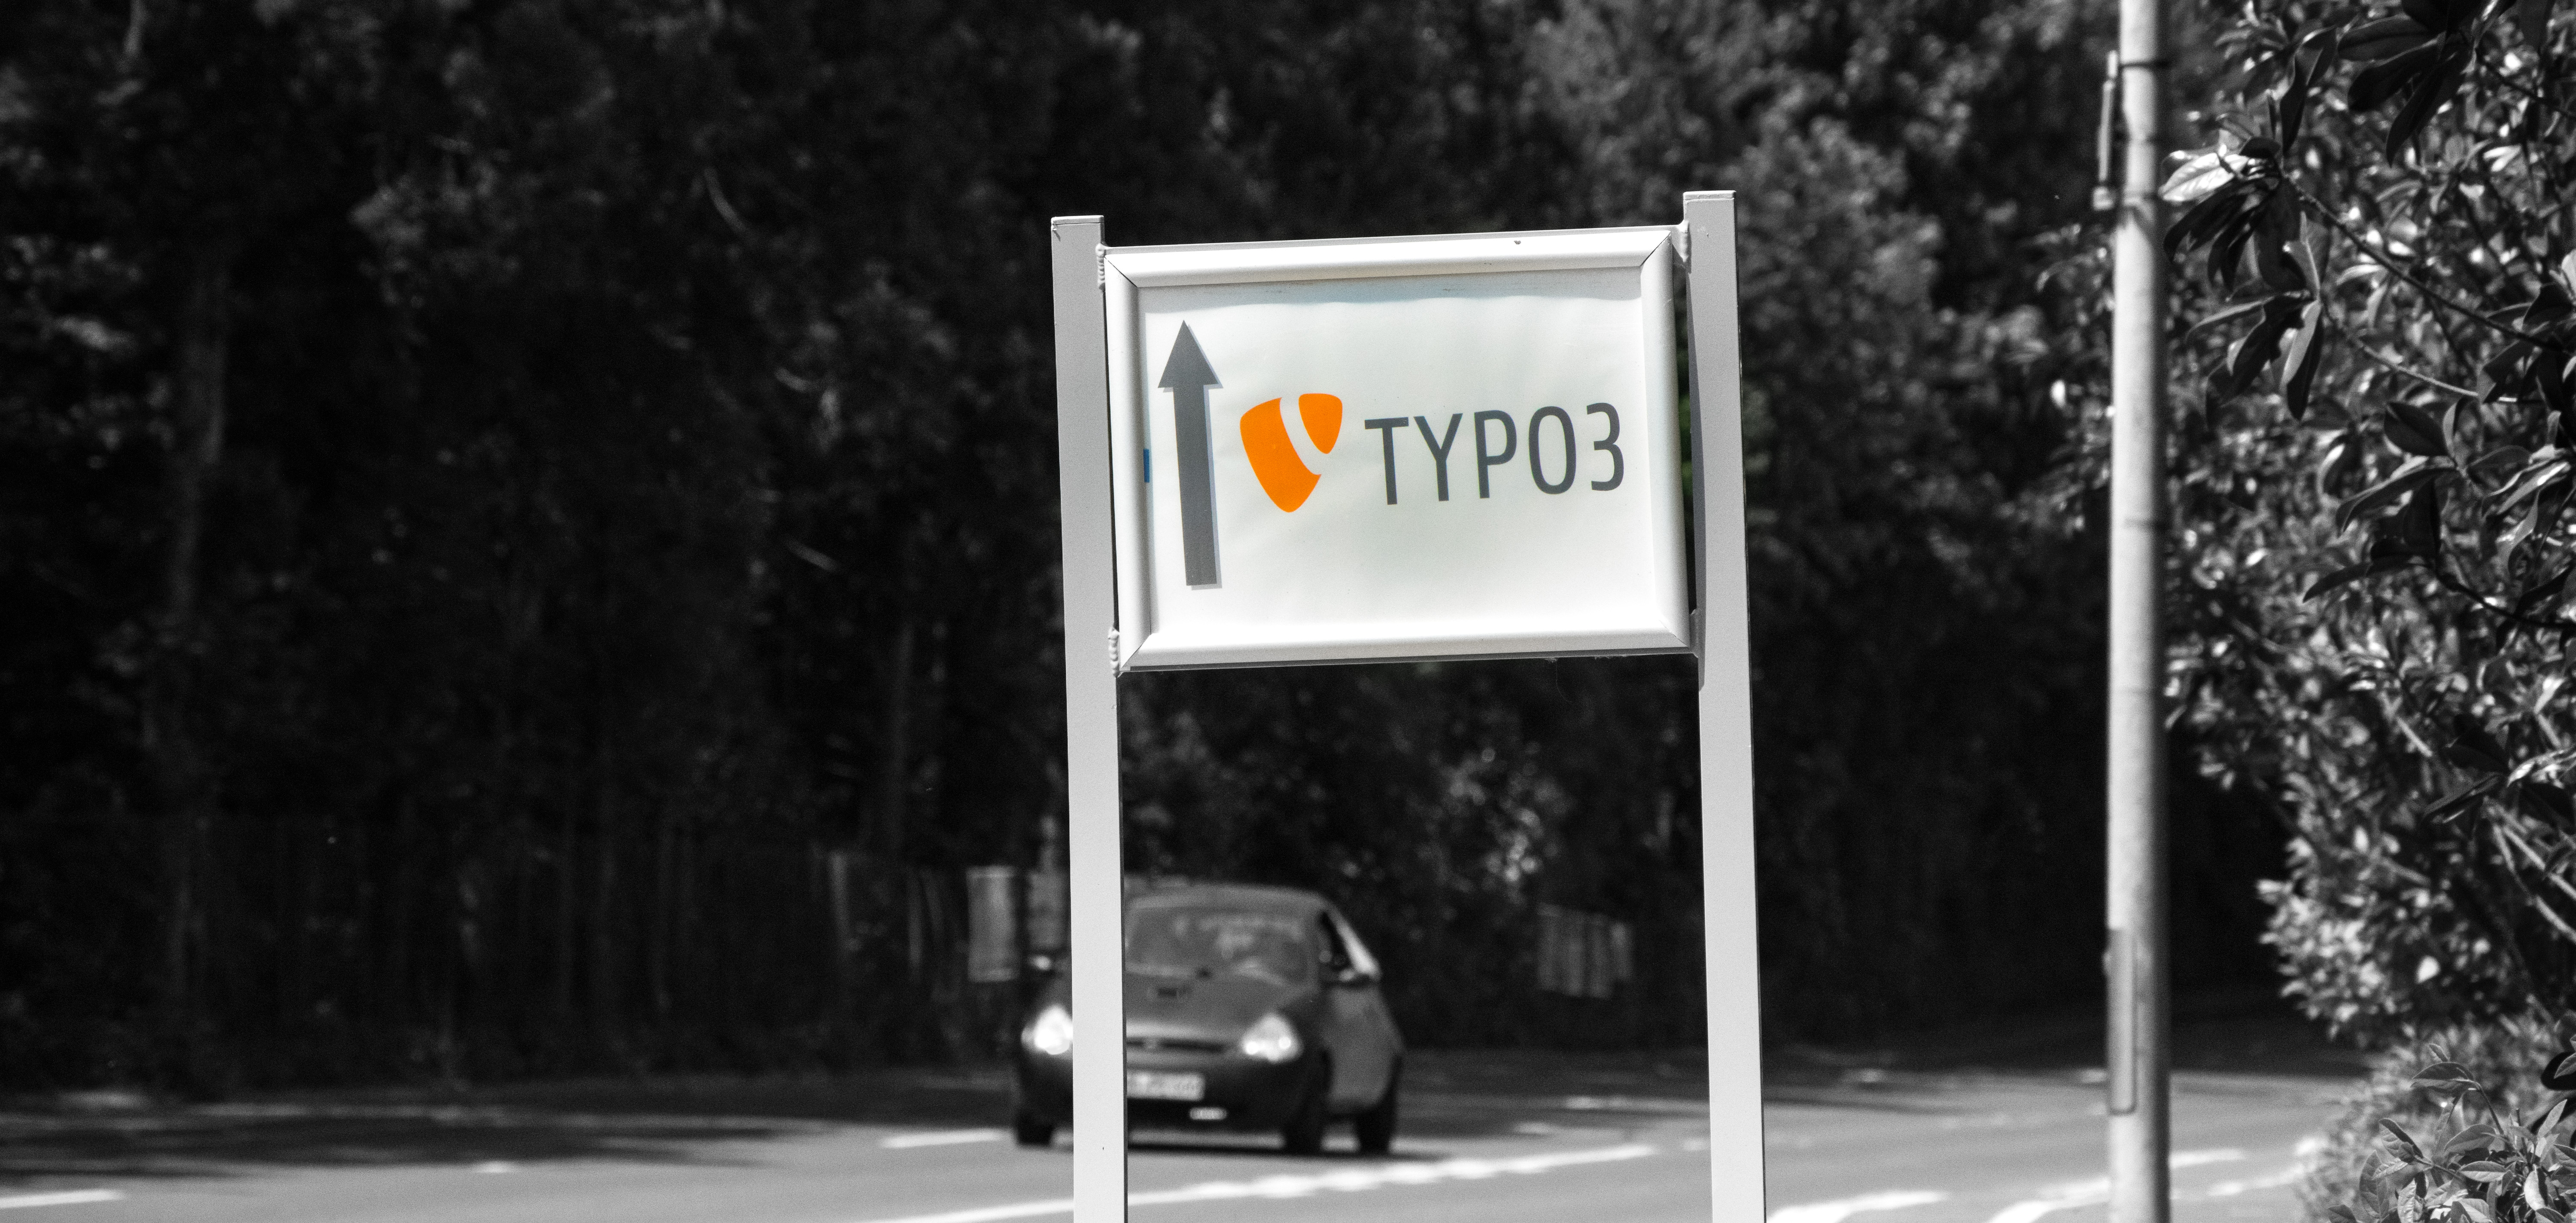 TYPO3 #CertiFUNcation Phantasialand 2015